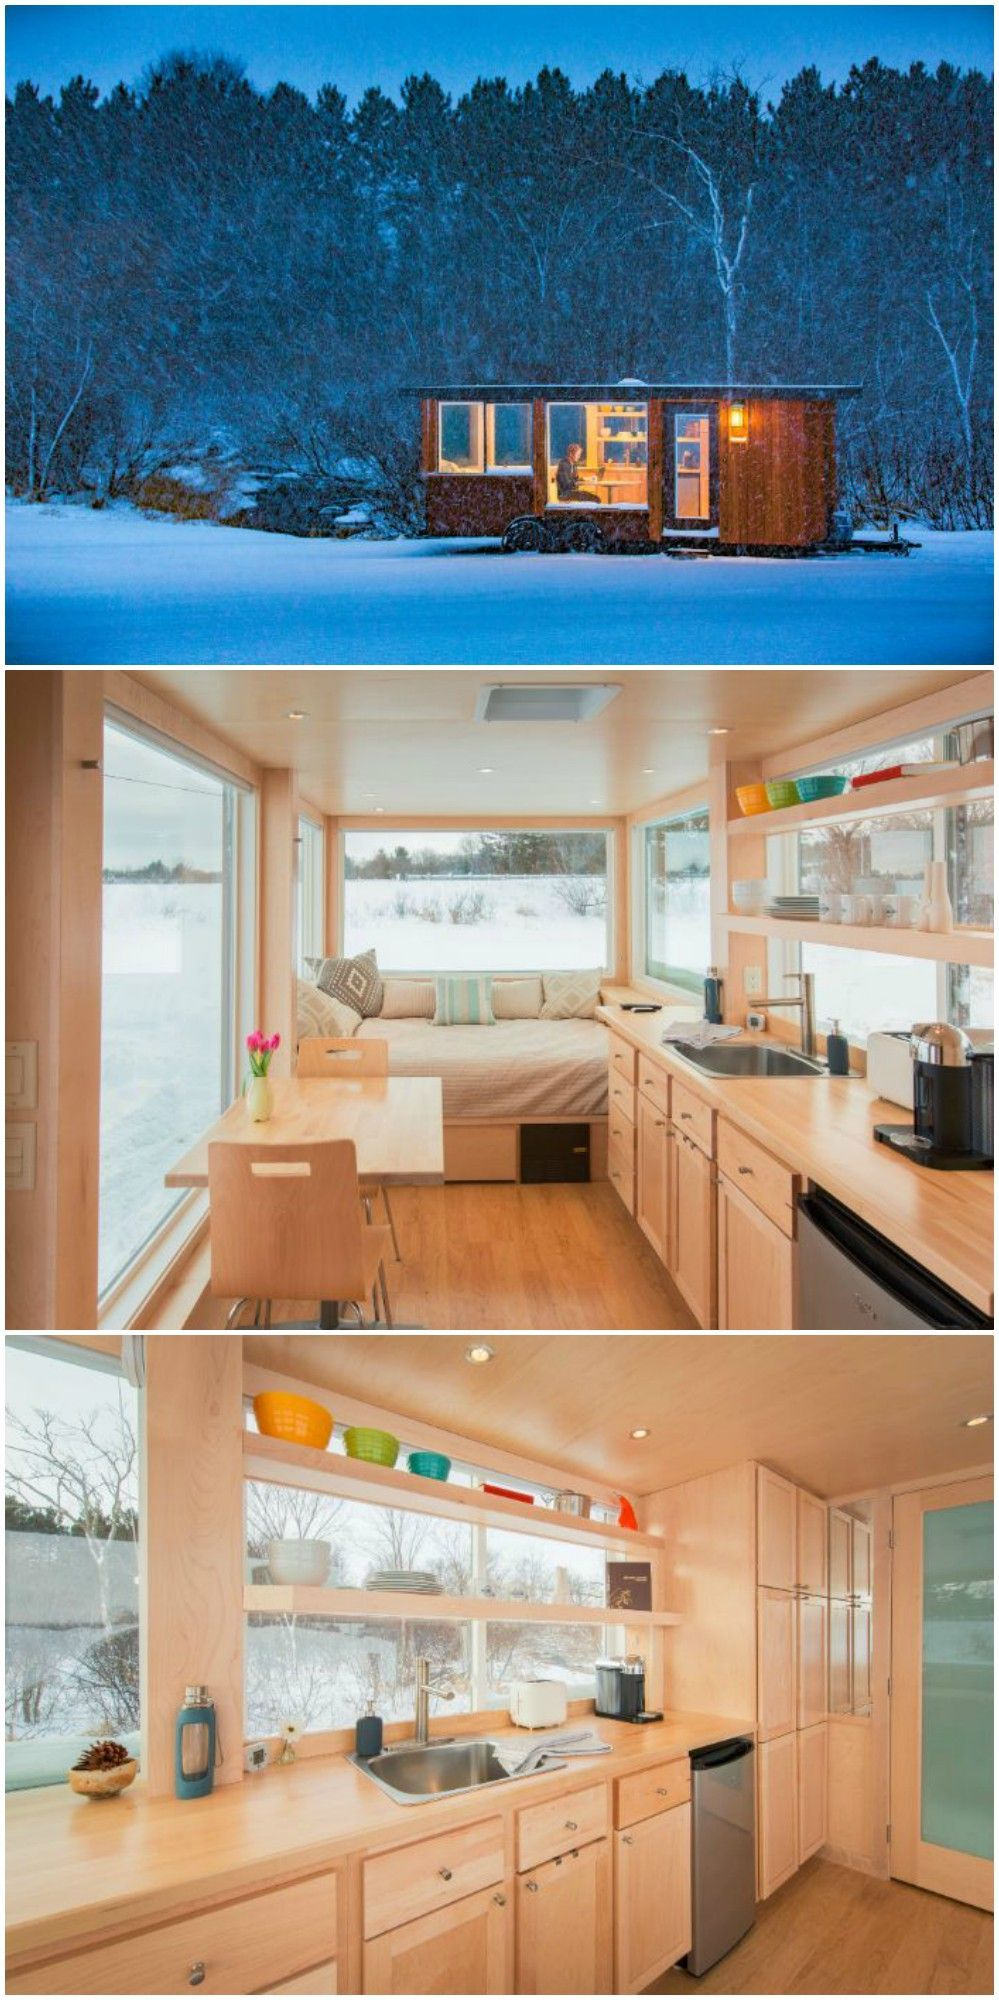 The tiny house Vista draws the outdoors in #tinyhouses